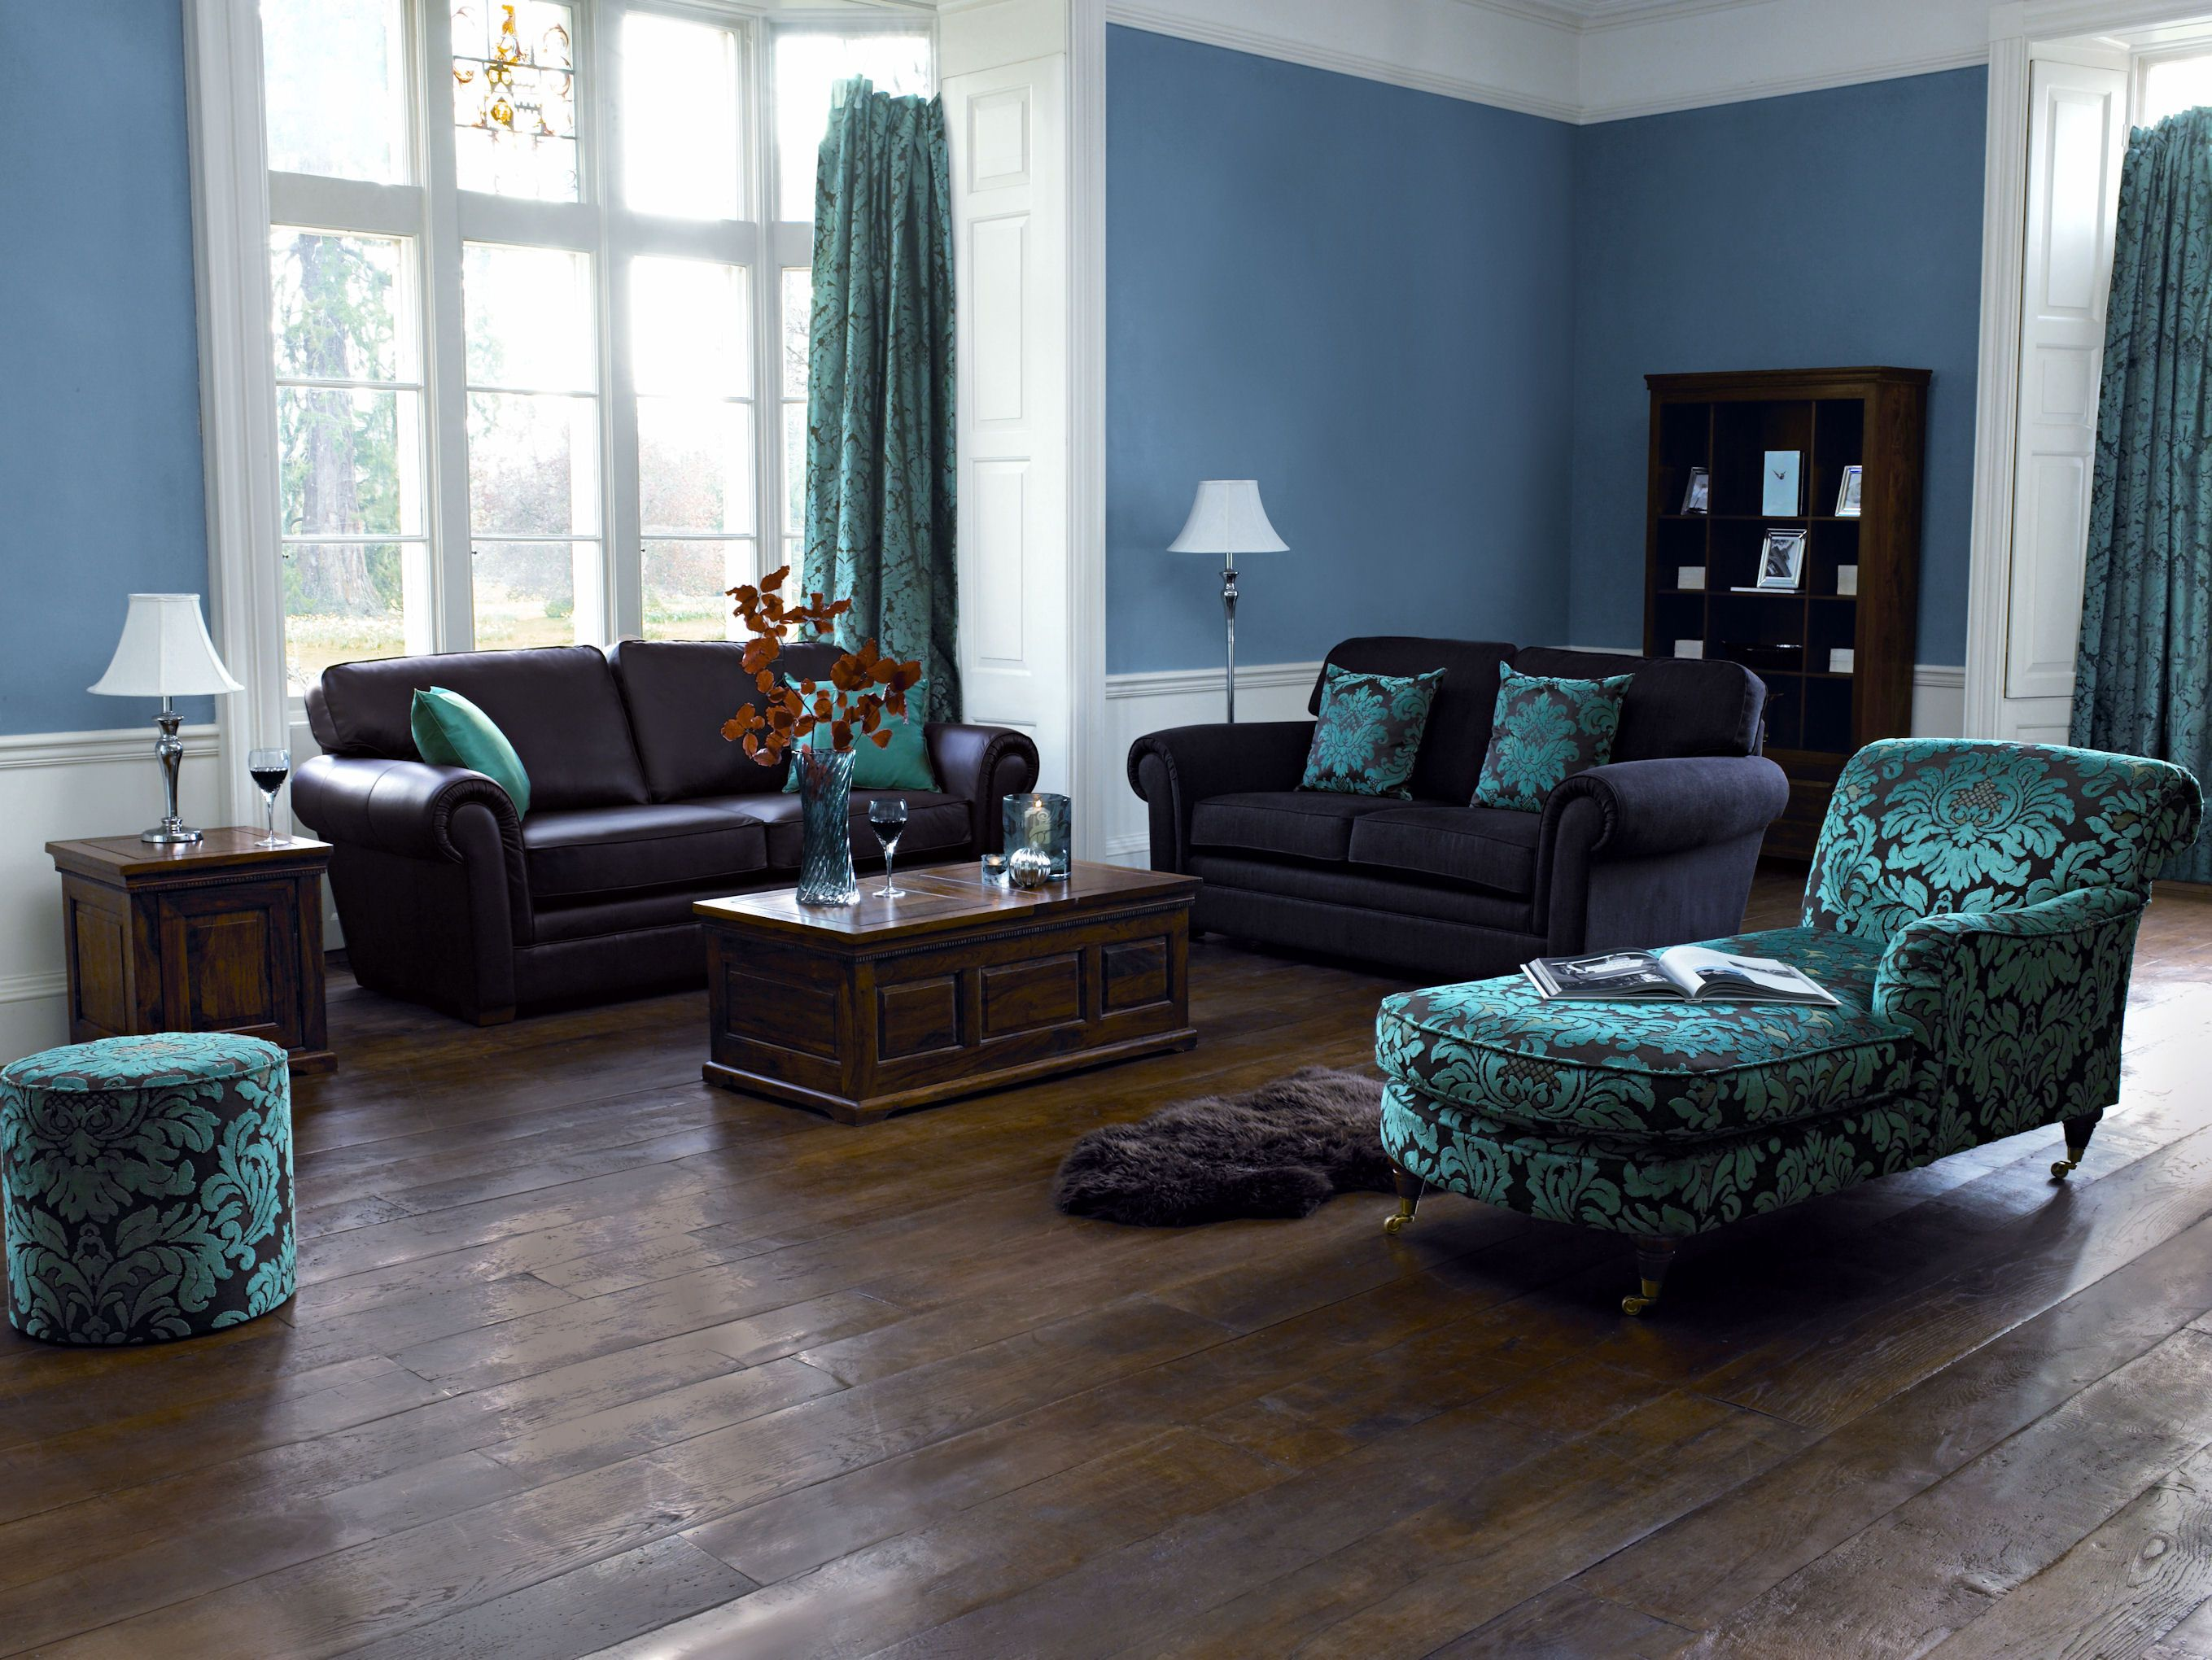 Blue living room ideas with various theme brown leather sofa and blue floral pillow near classic standing lamp also table lamp on dark blue living room